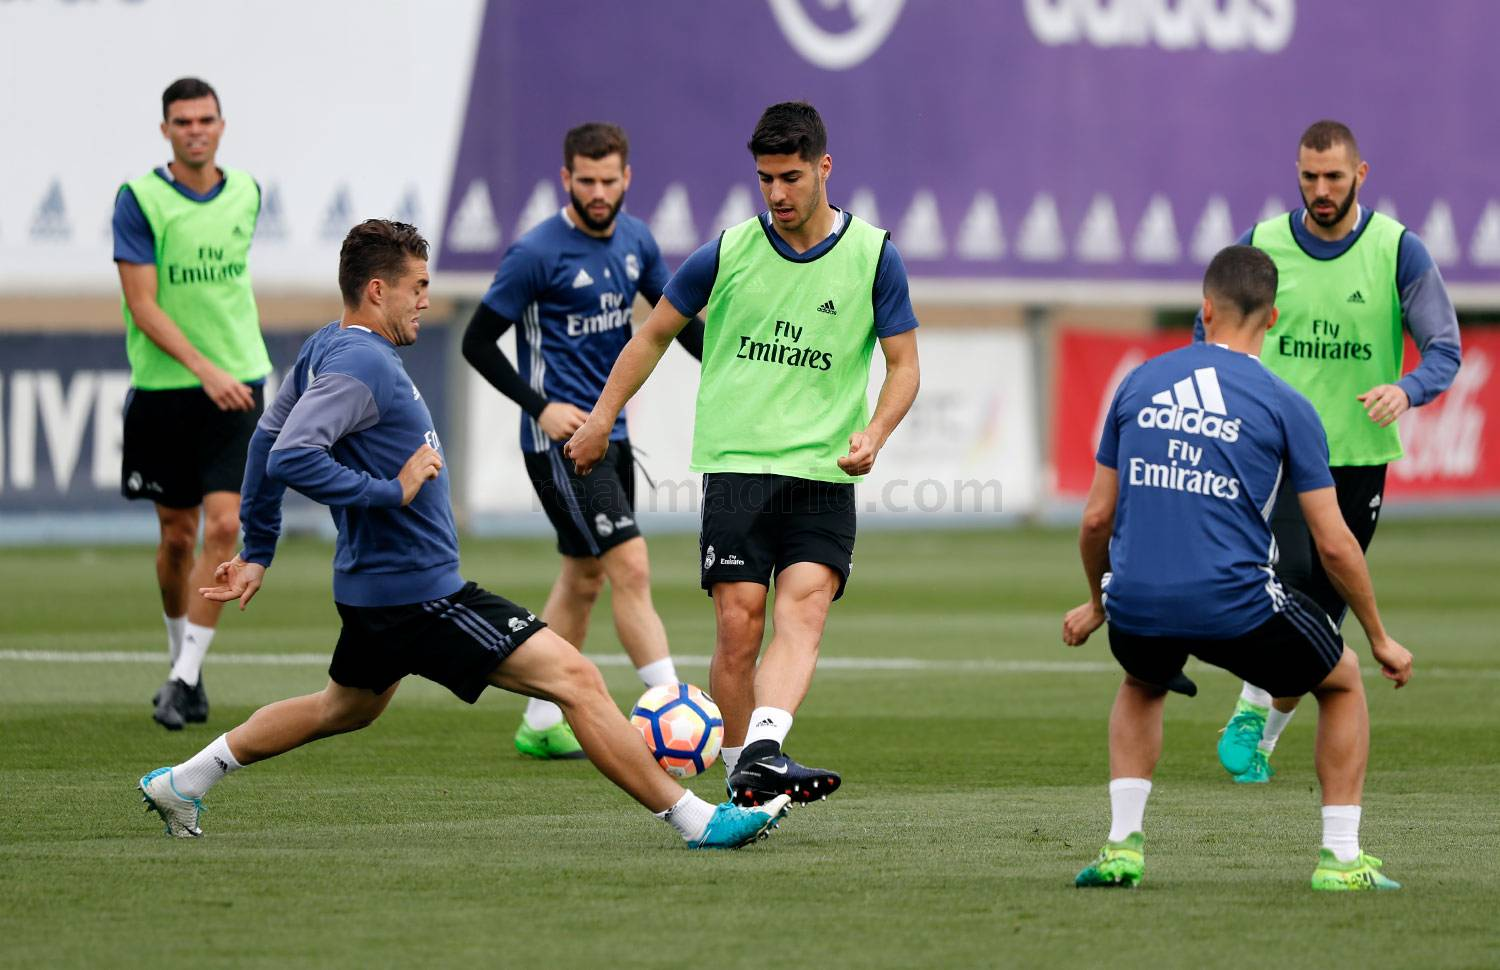 Real Madrid - Entrenamiento del Real Madrid - 04-05-2017